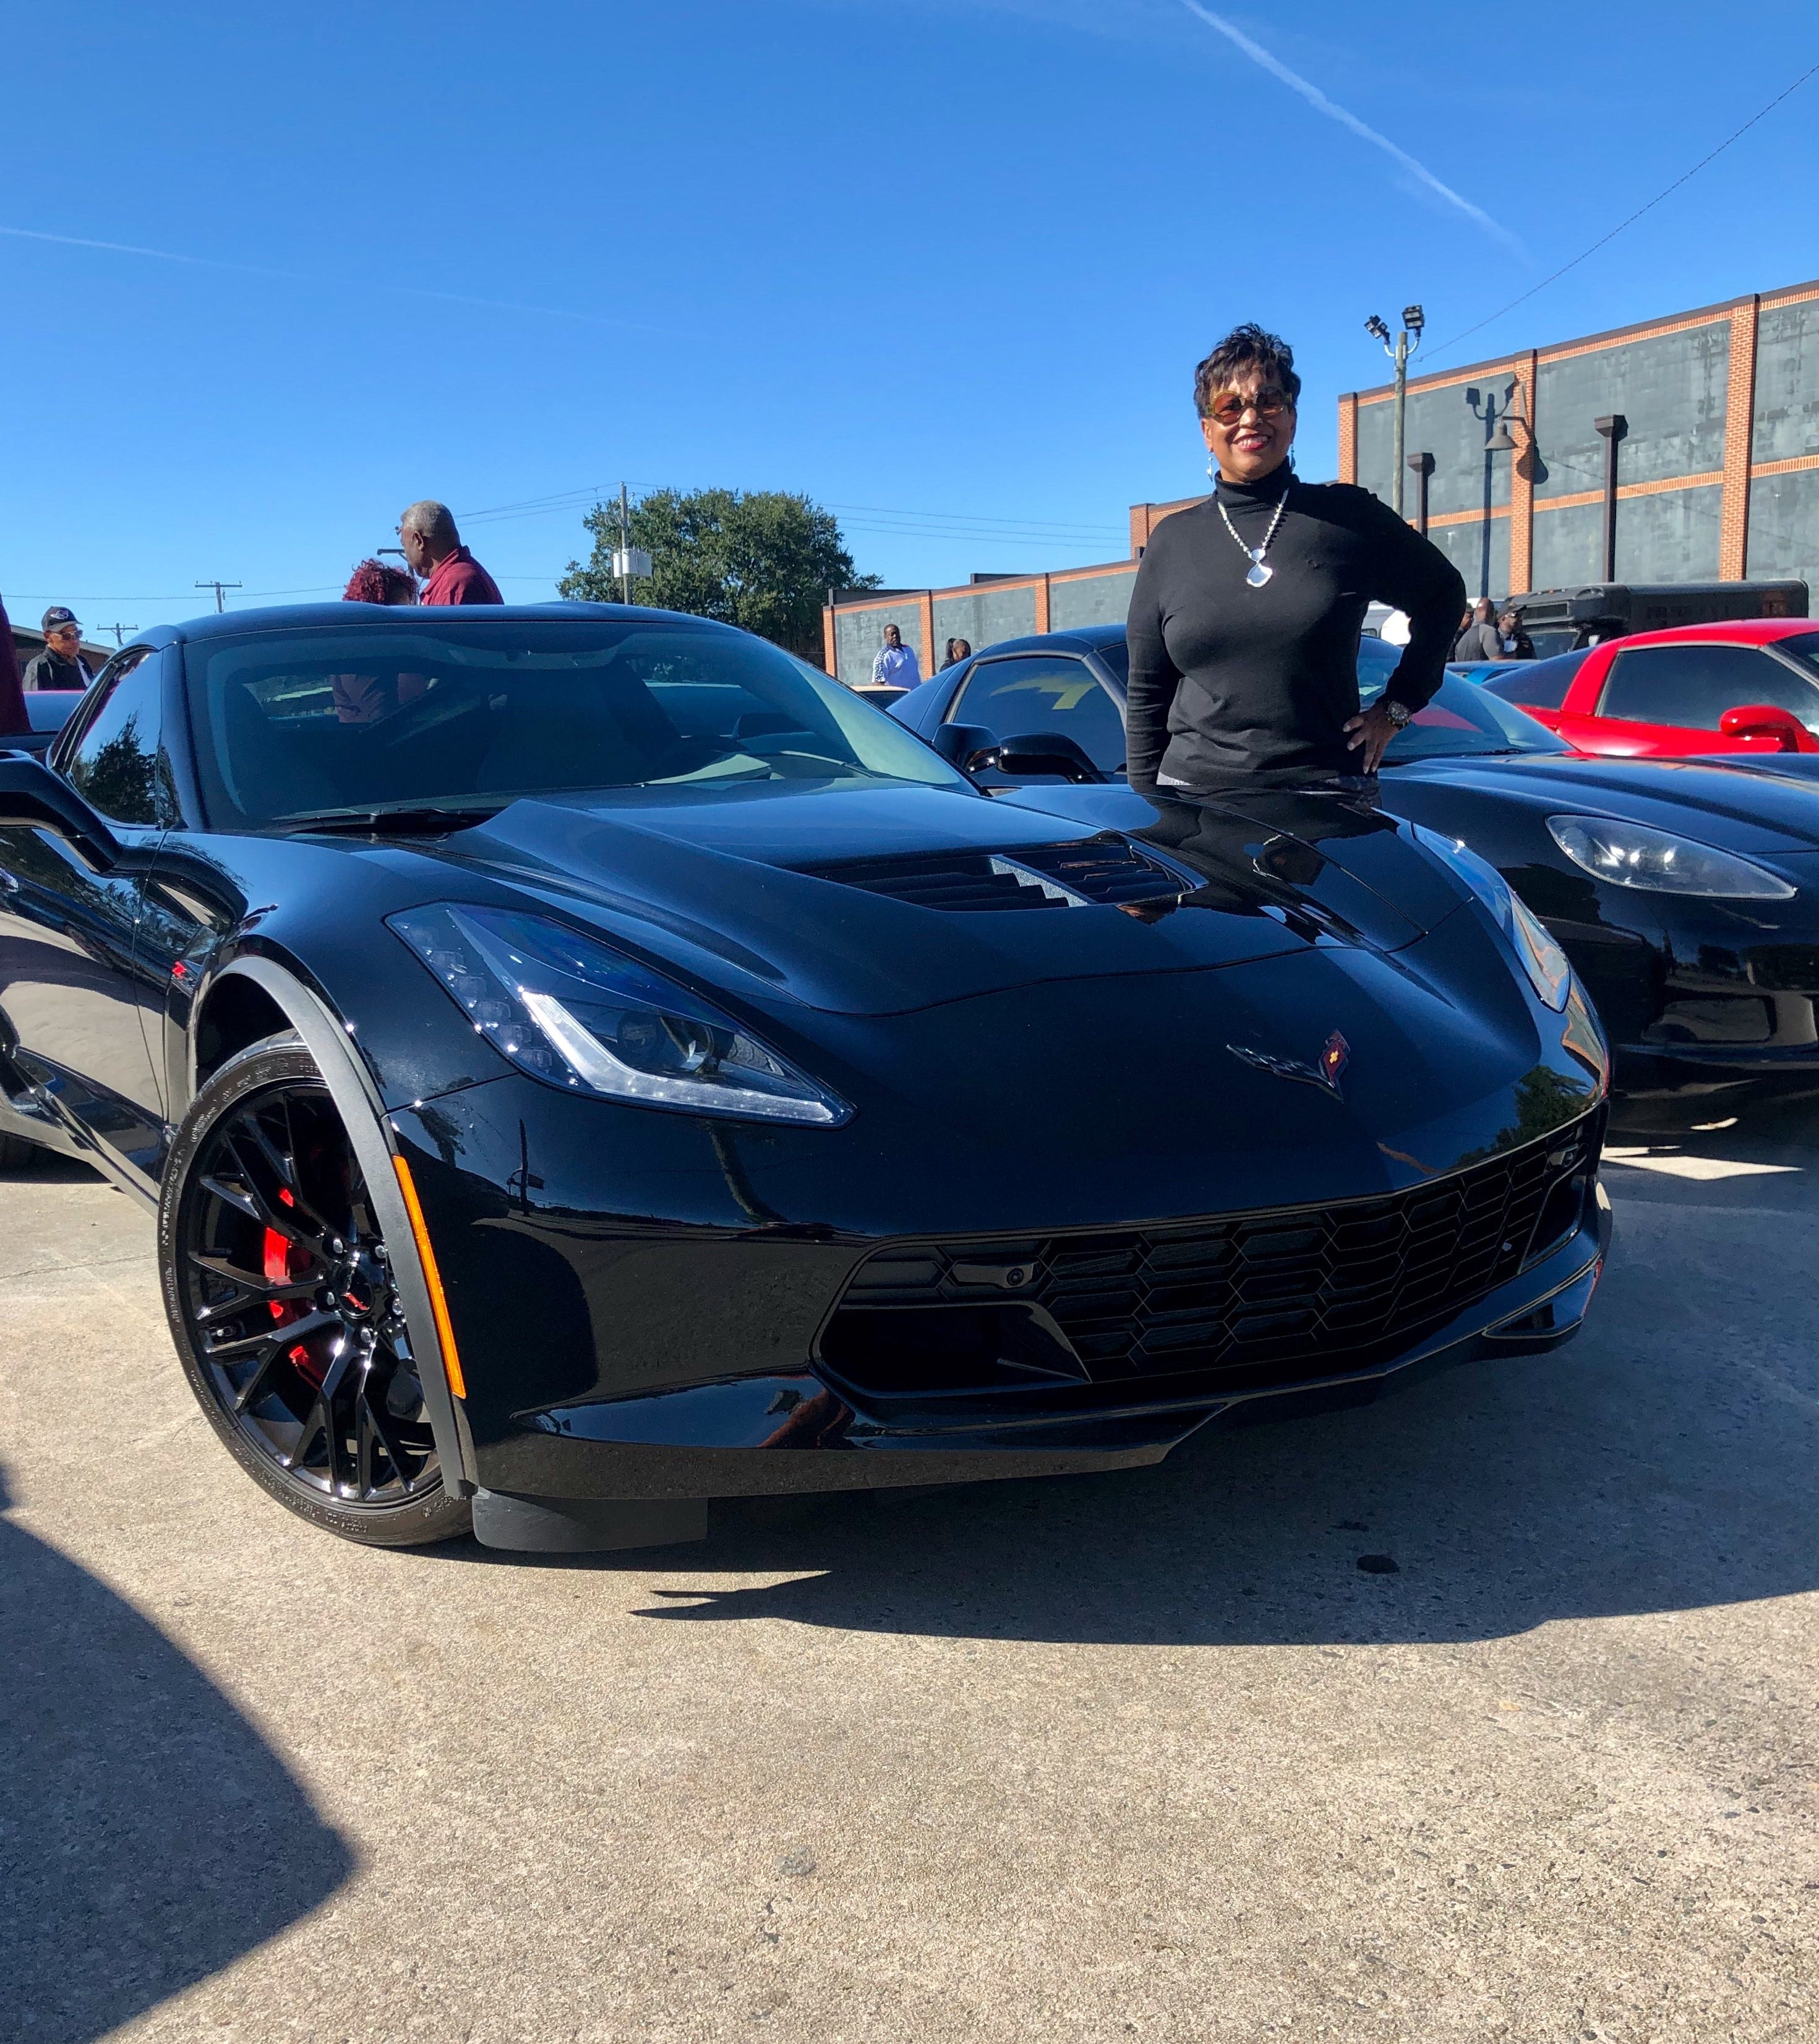 Lawsuit seeks millions from GM for cracked wheels on pricey Corvettes